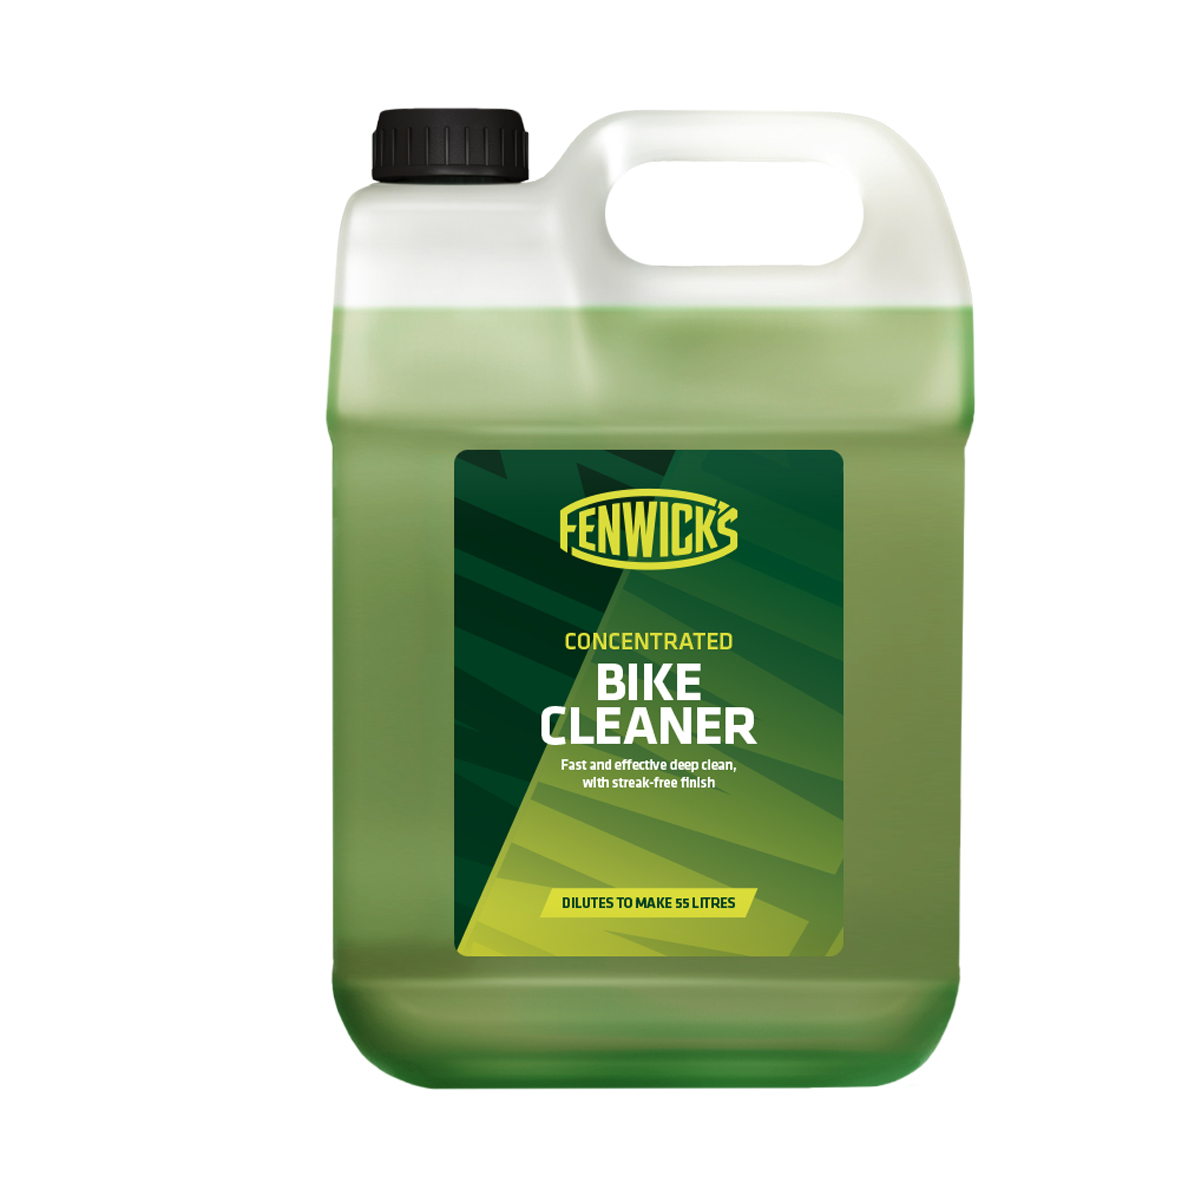 Fenwick's Concentrated Bike Cleaner (5 Litre)